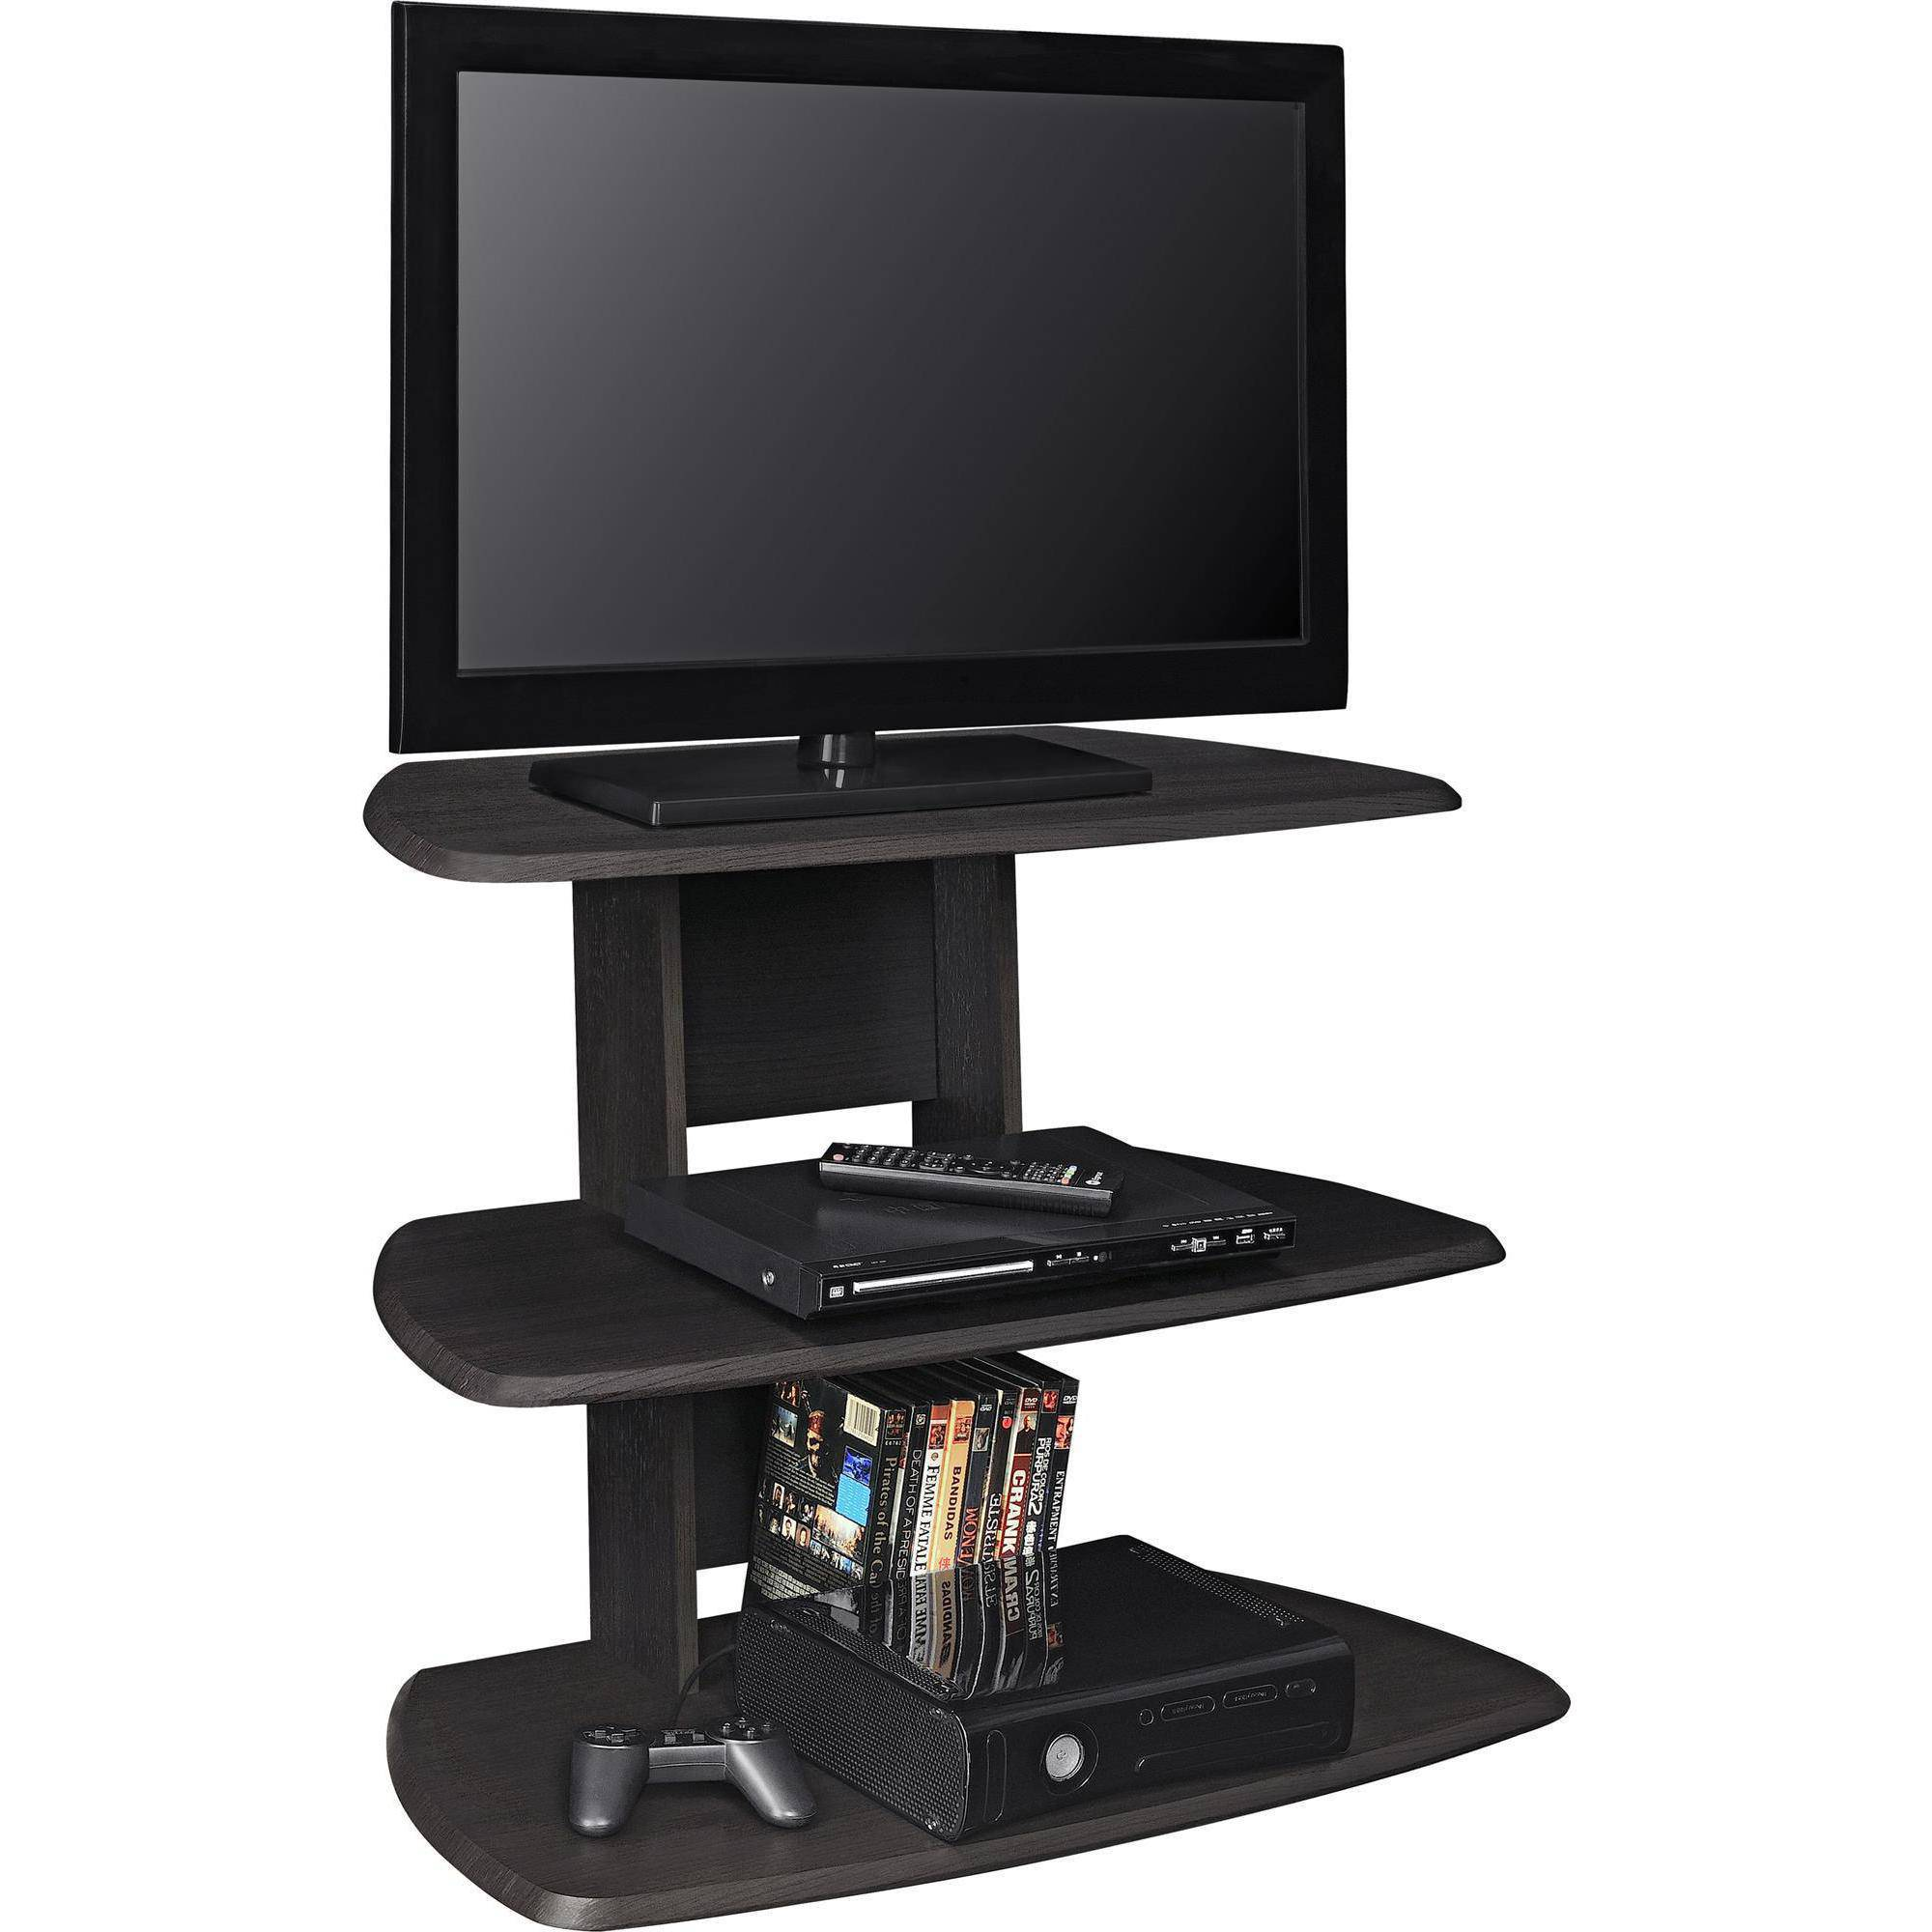 TV Stand Table Up To 32 Inch Espresso Bedroom Living Room